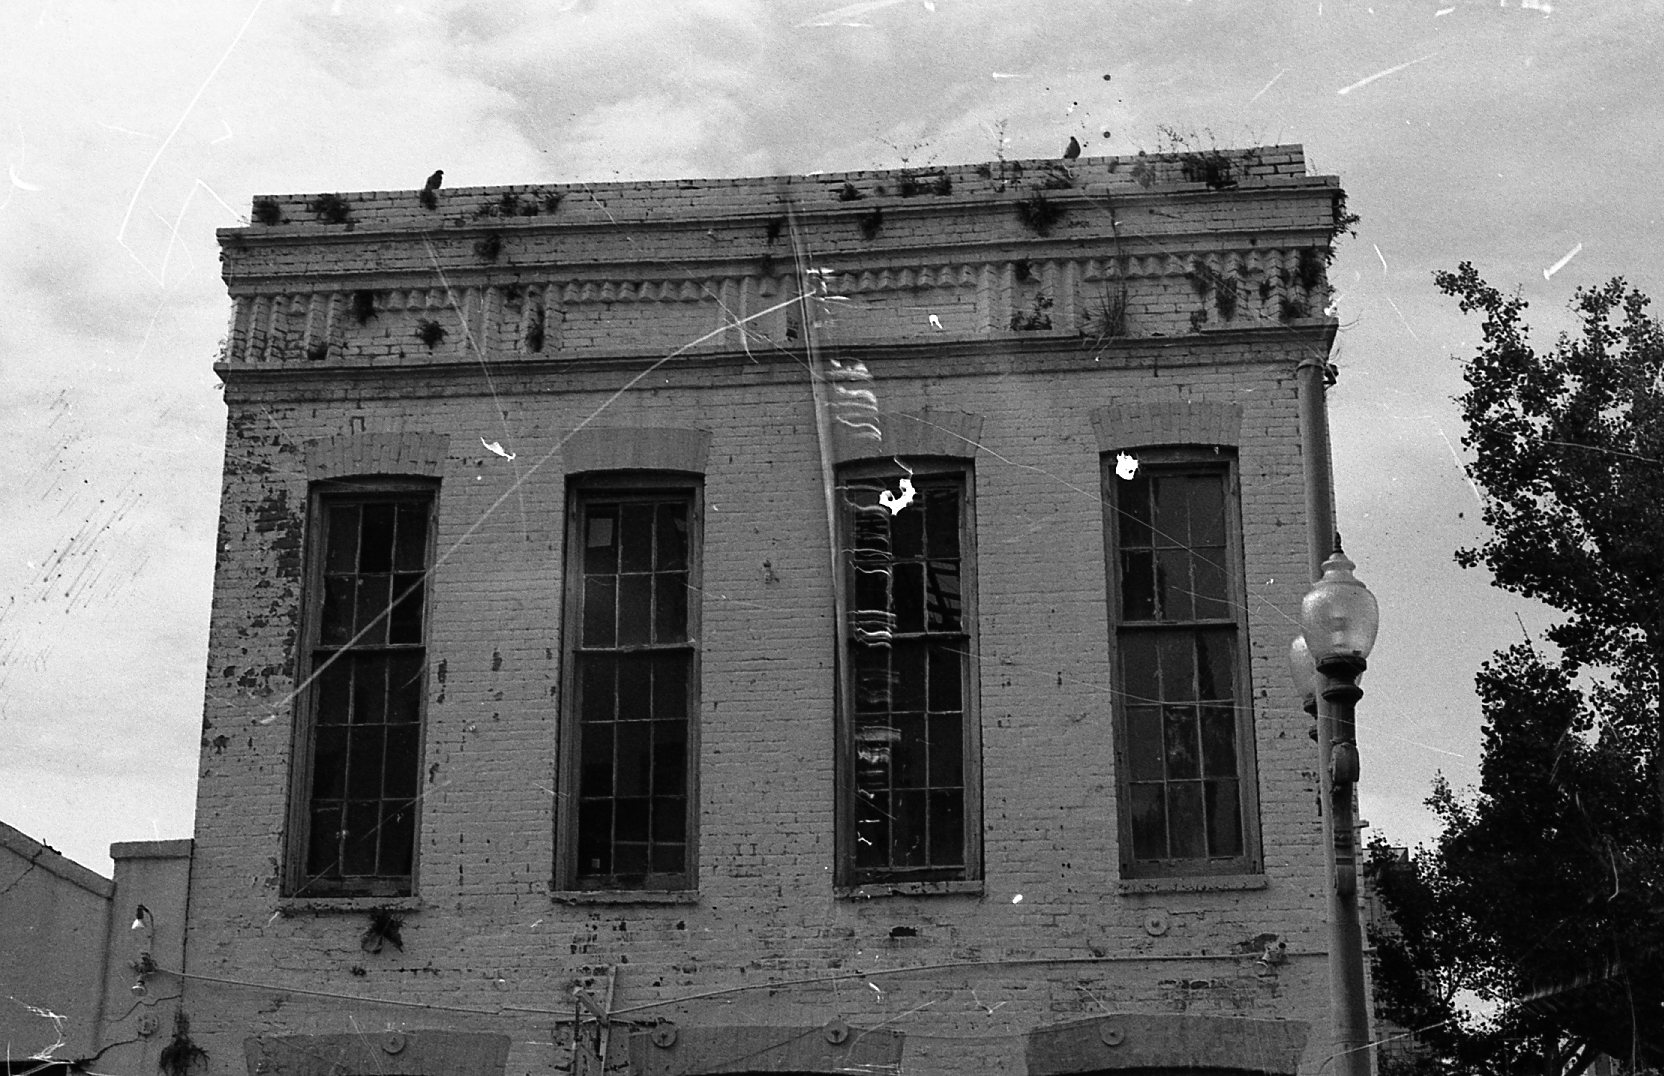 35mm photos of New Orleans